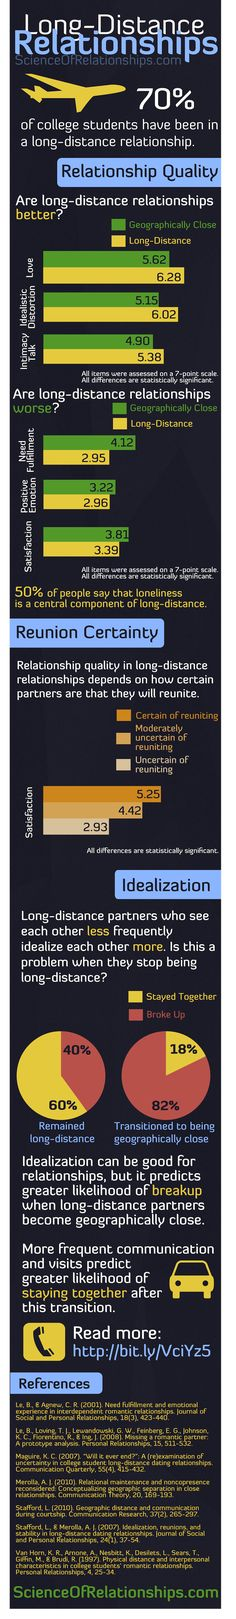 Long-Distance Relationships: The Infographic